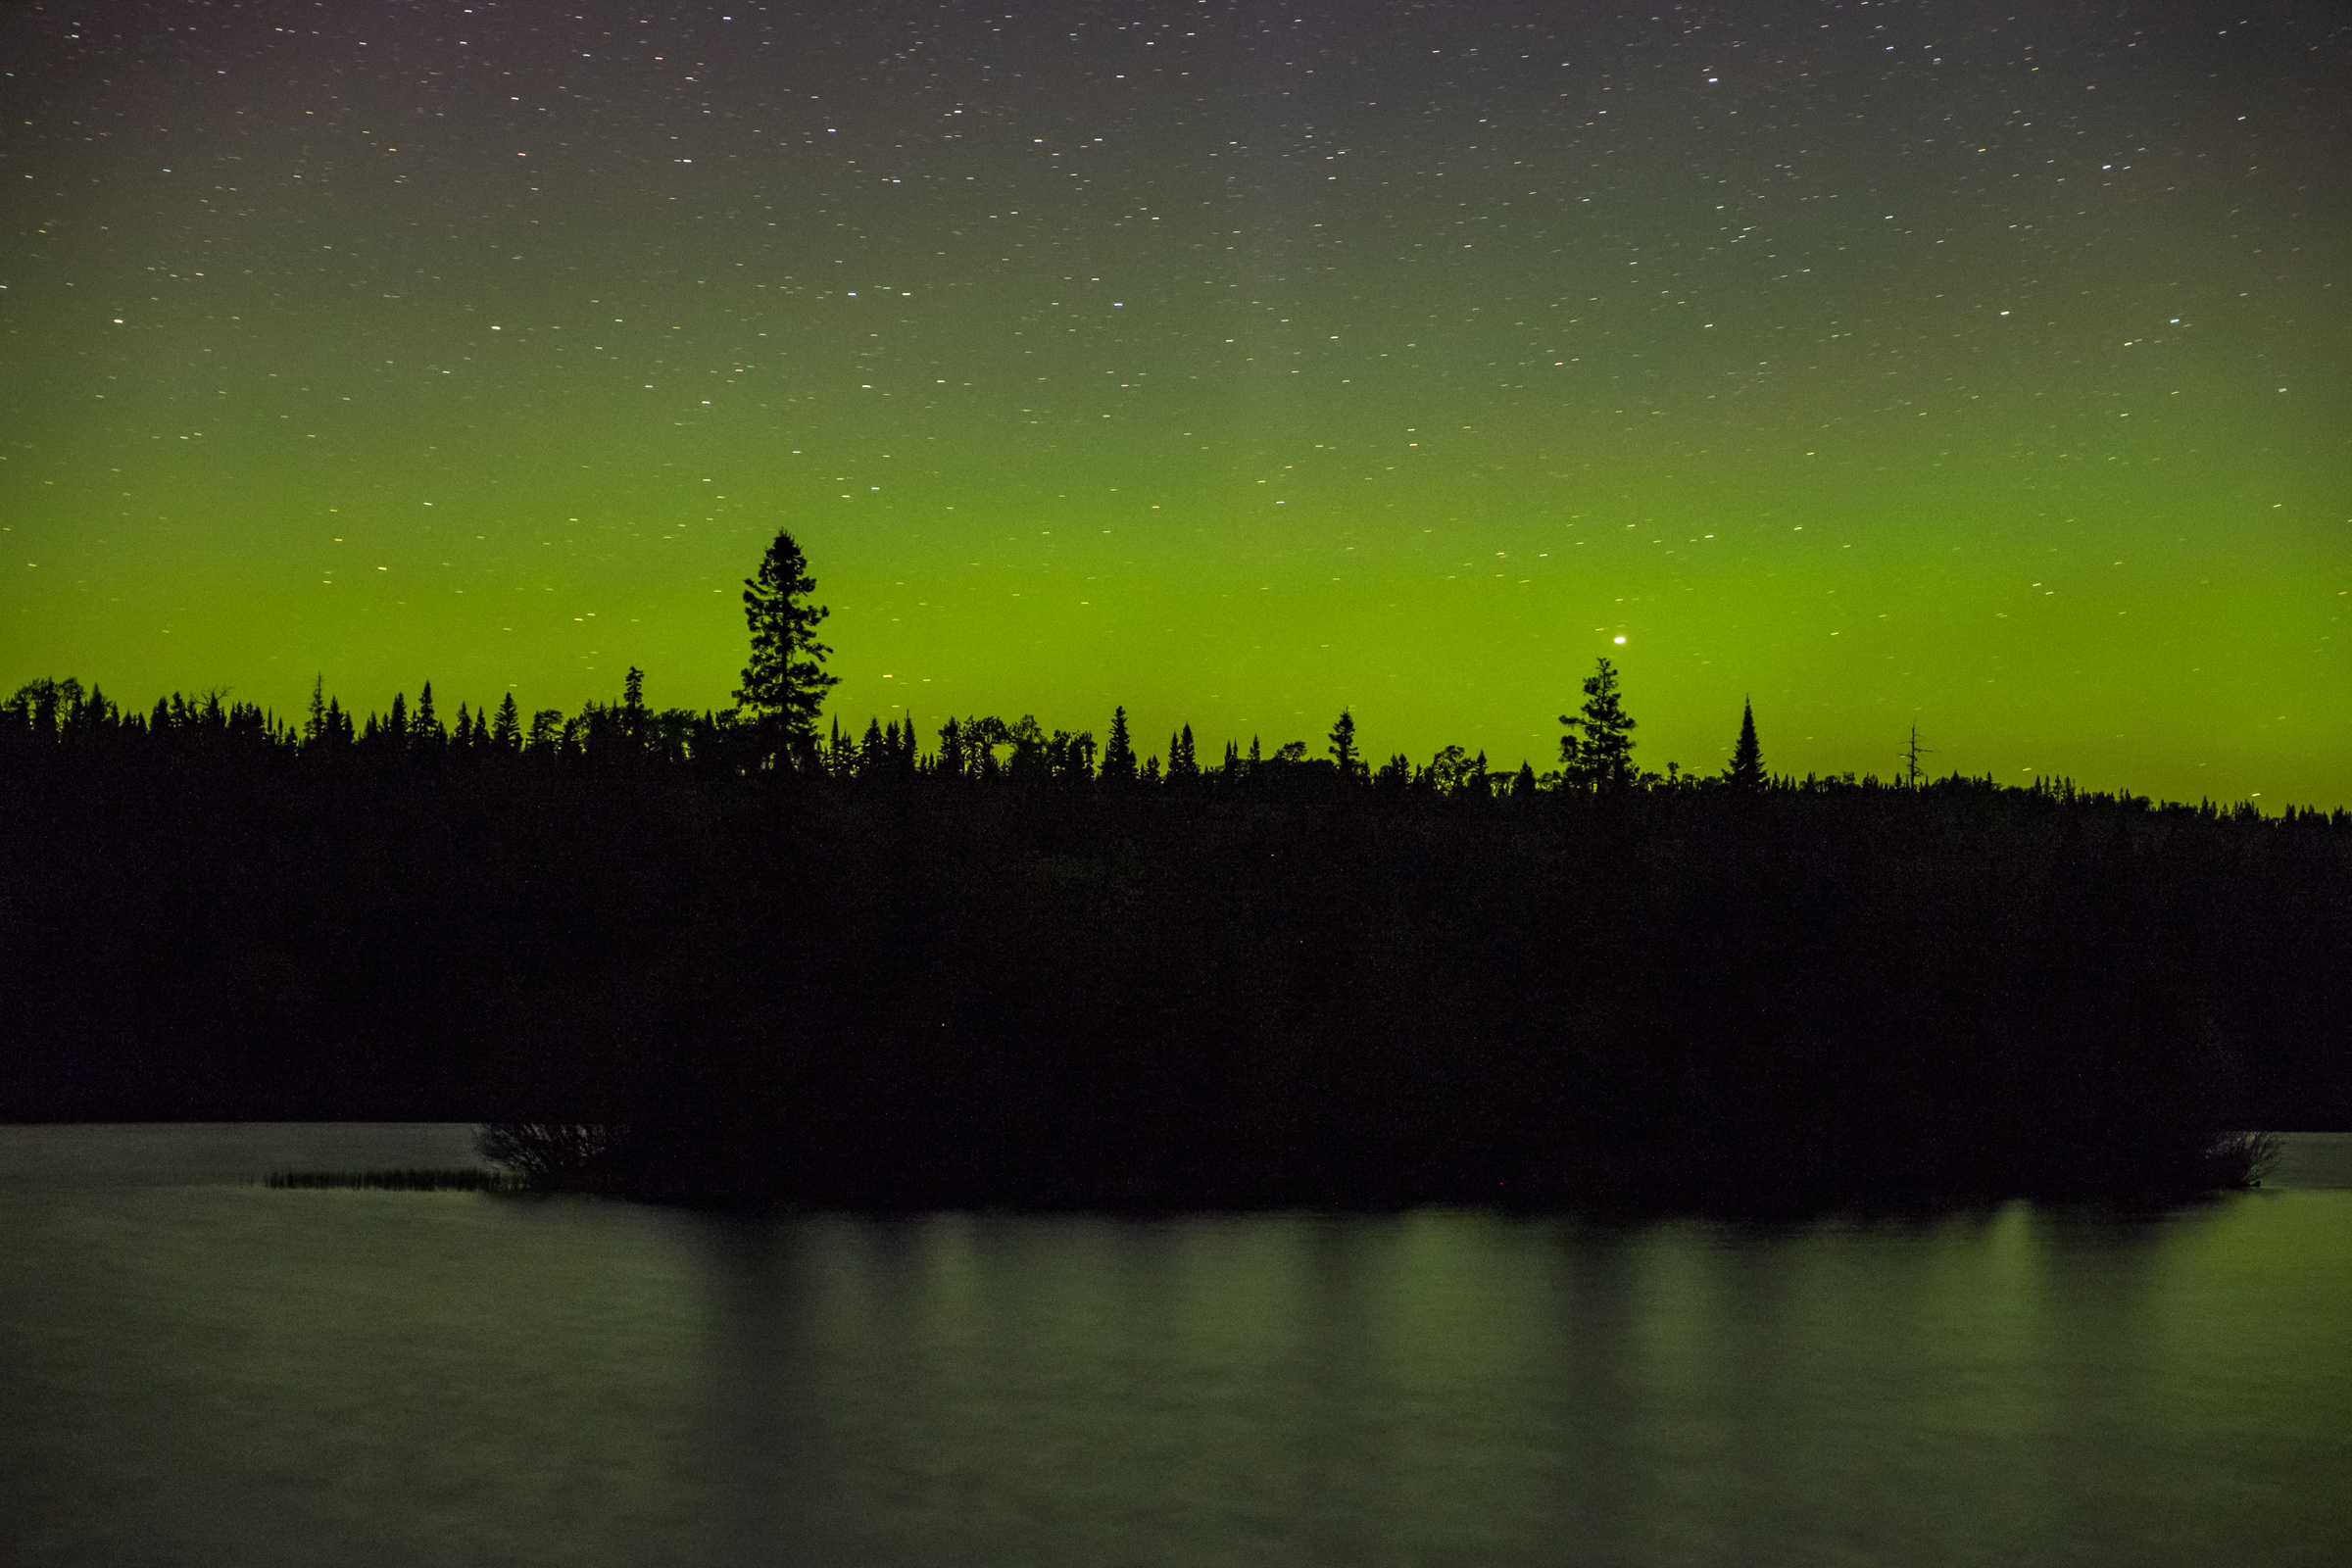 The Aurora Borealis glow over the northwest side of the island in 2016.